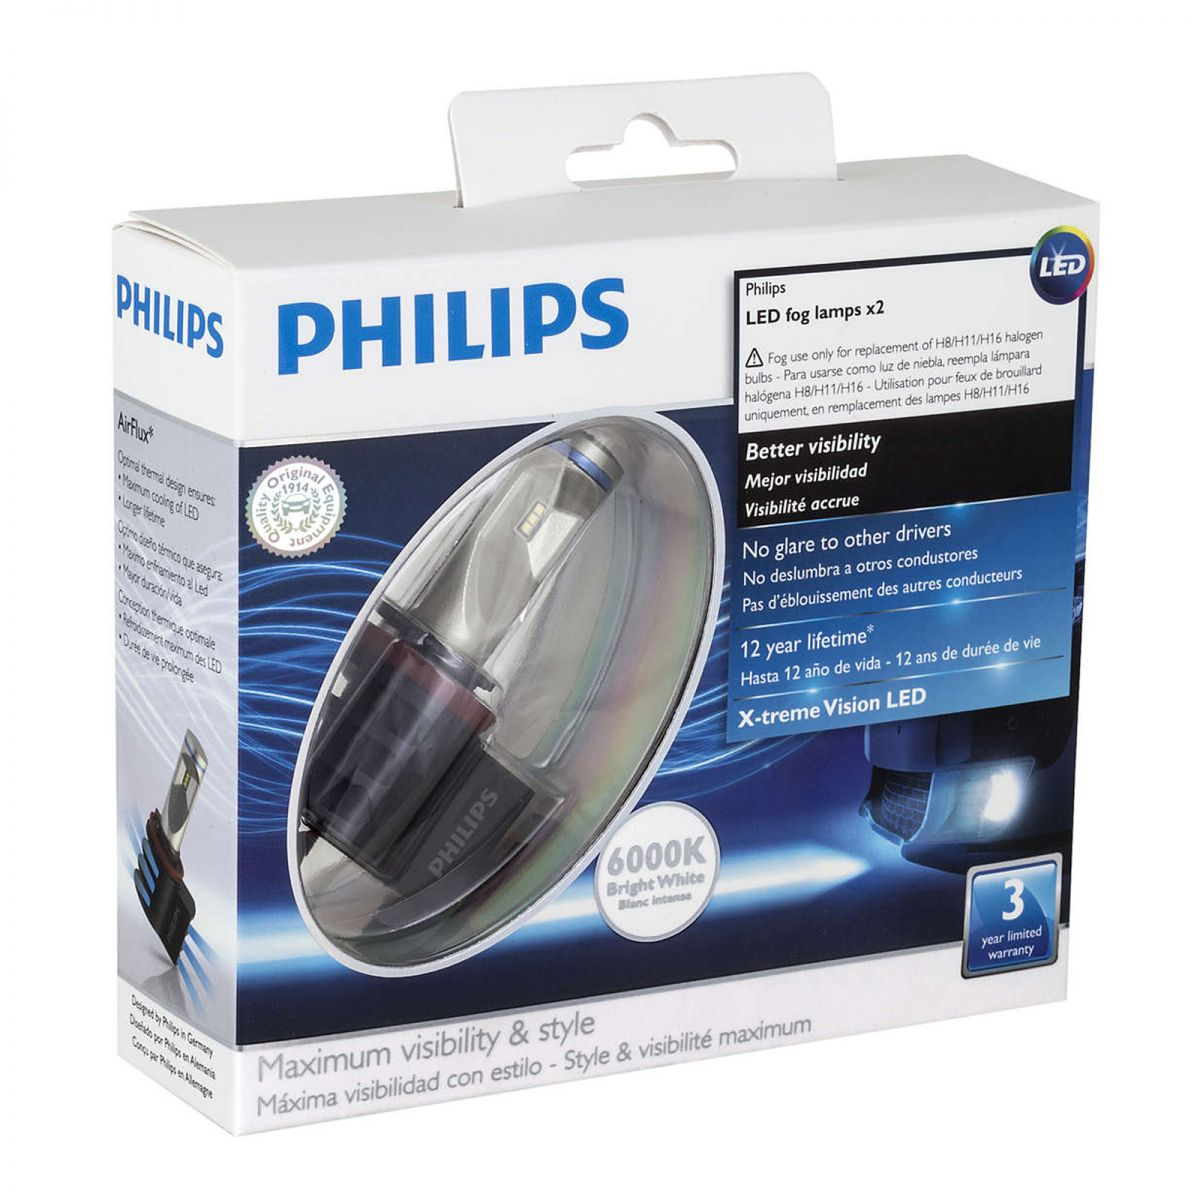 philips x treme vision led fog lamps information review. Black Bedroom Furniture Sets. Home Design Ideas